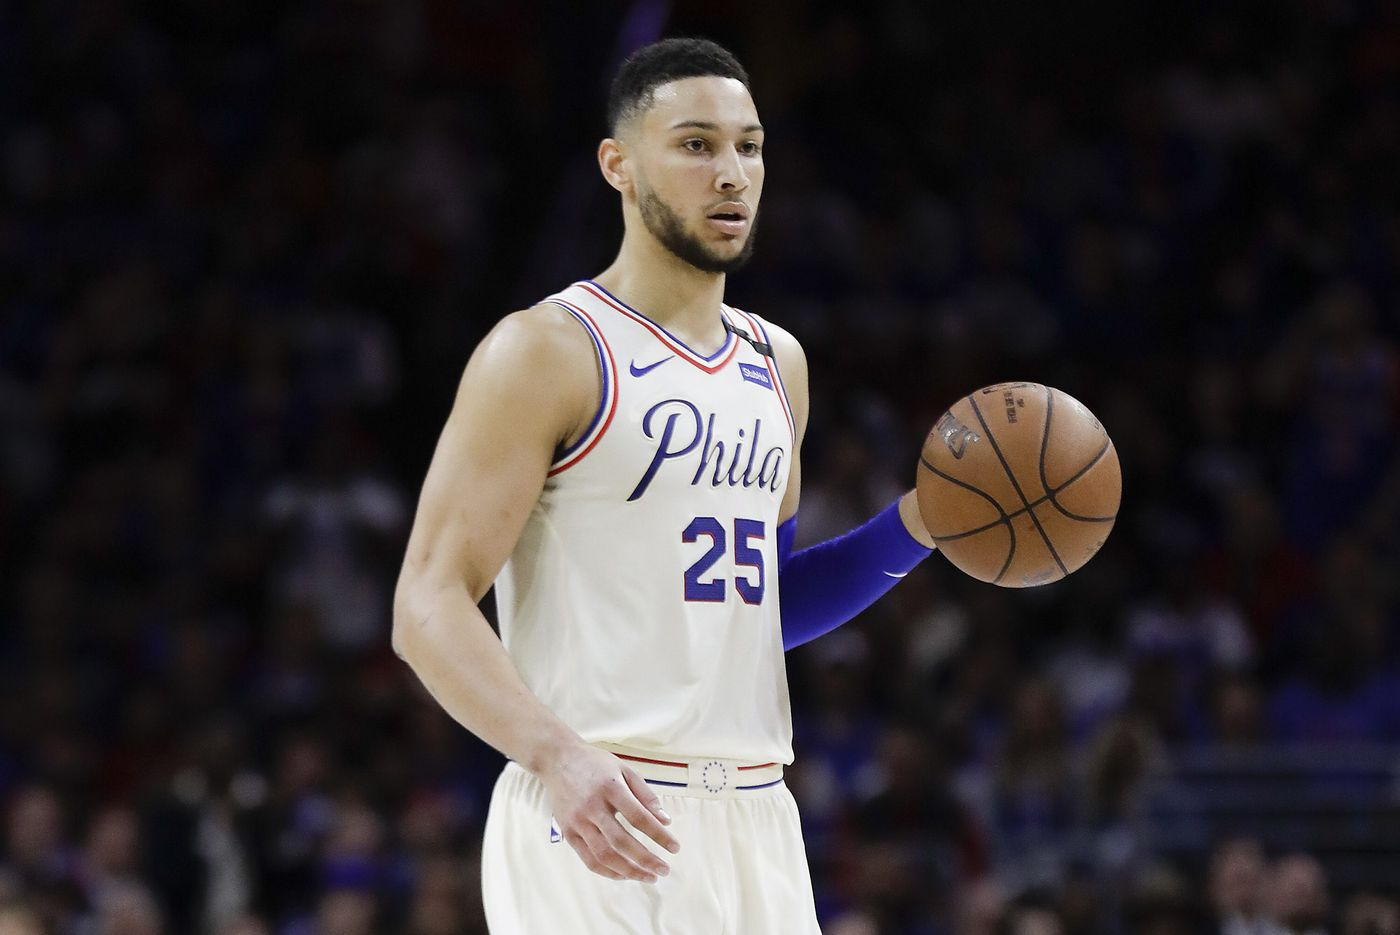 Sixers' Ben Simmons will be on NBA 2K19 cover … in Australia